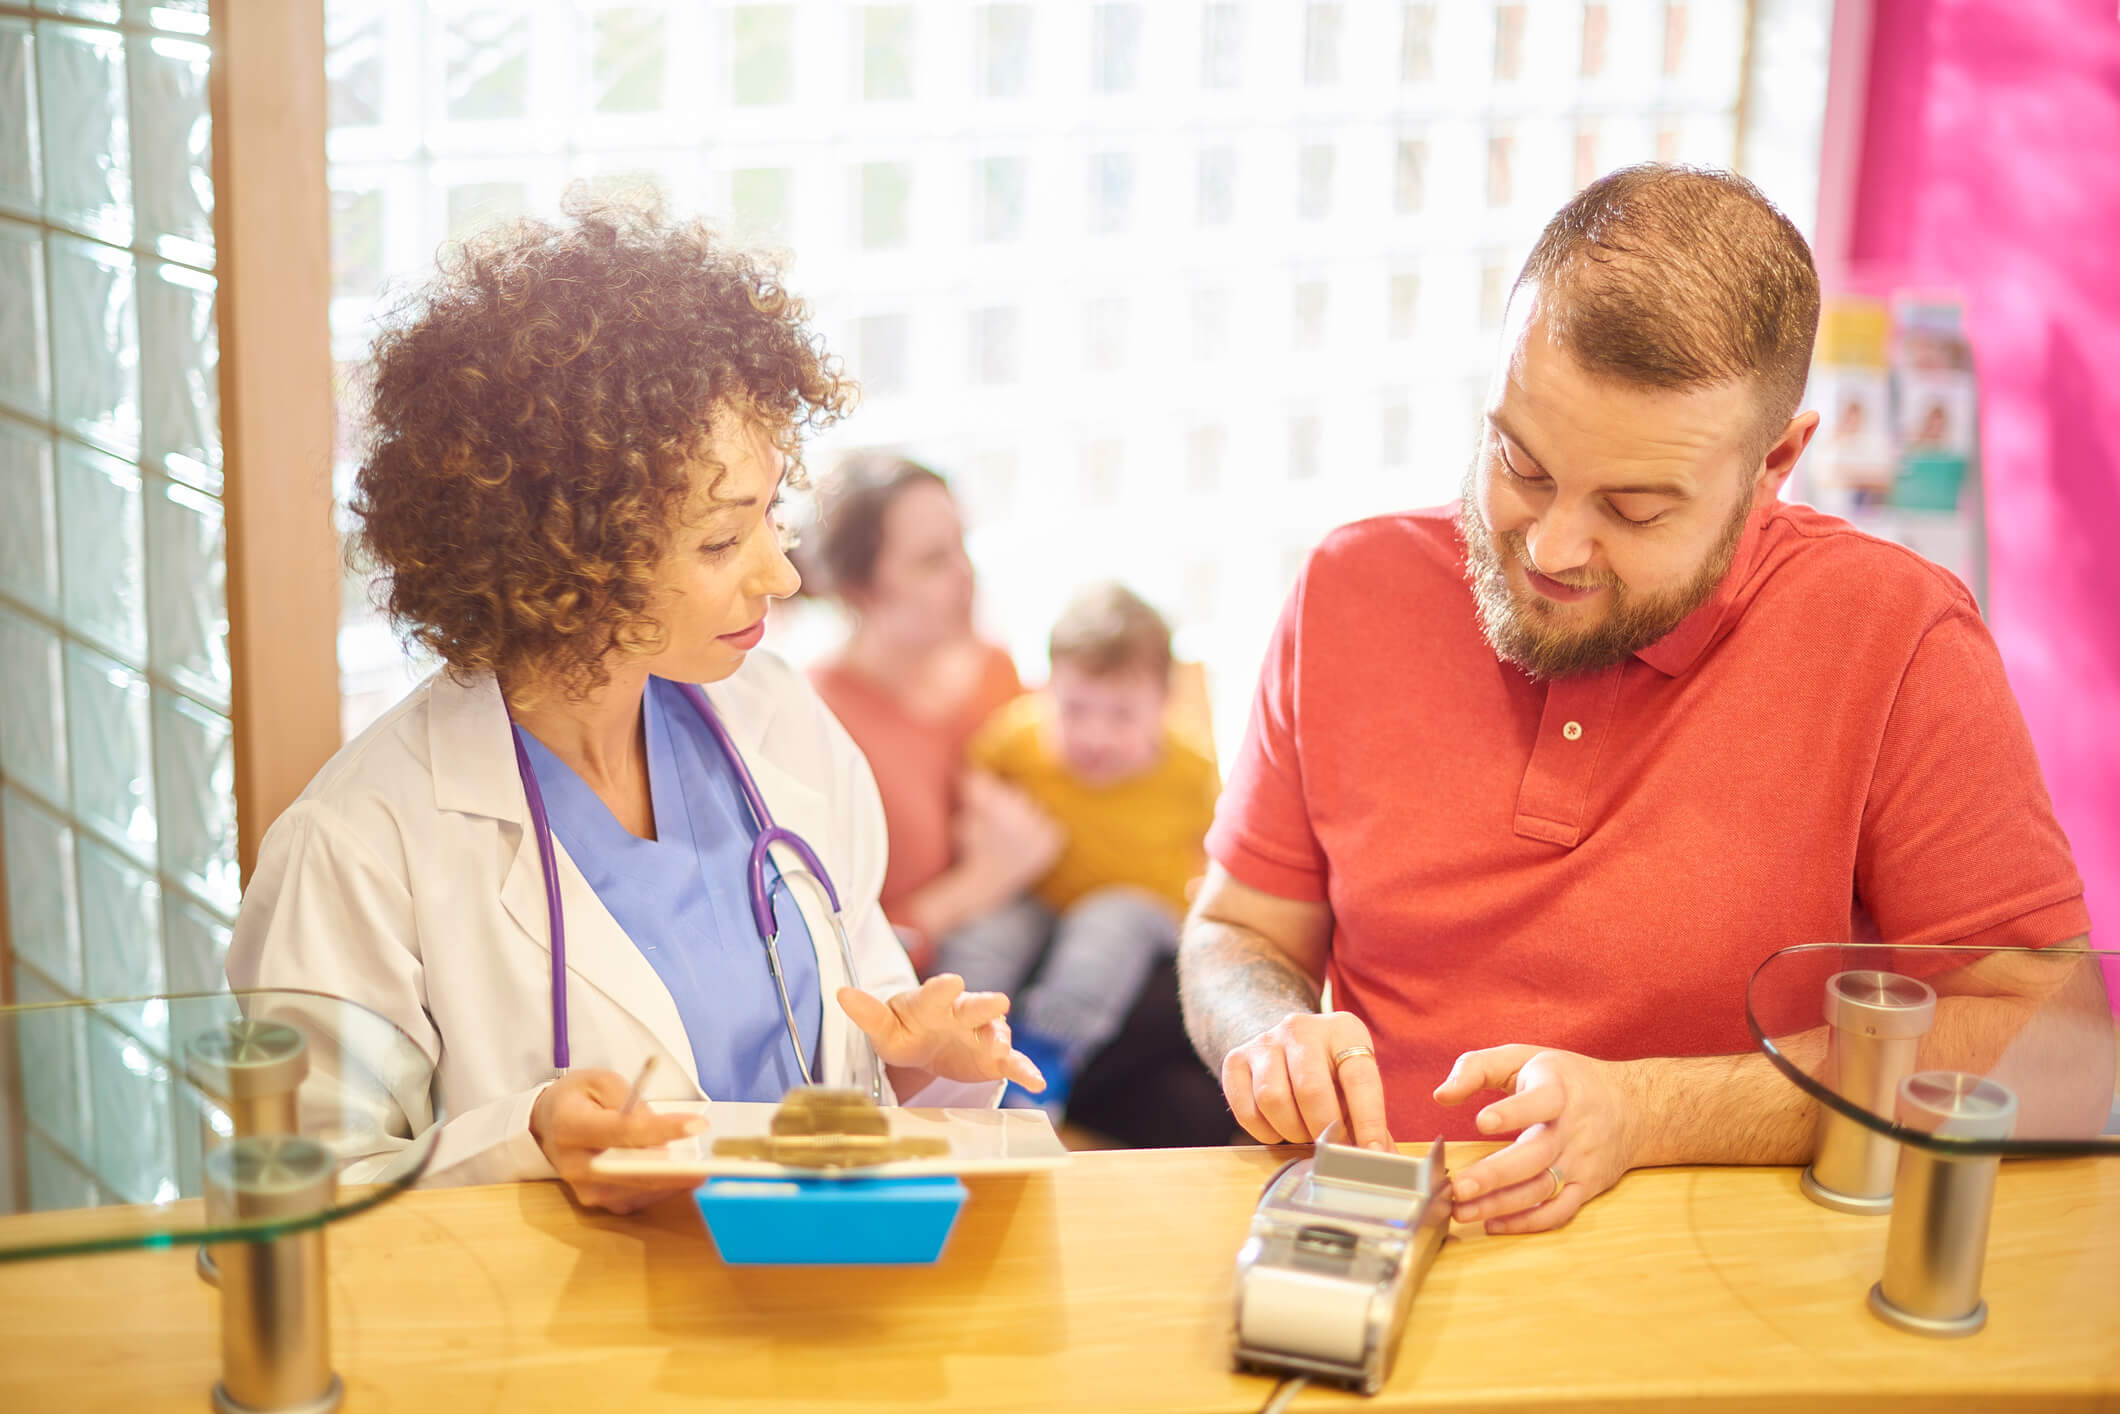 man talking to a doctor while checking out and paying his bill